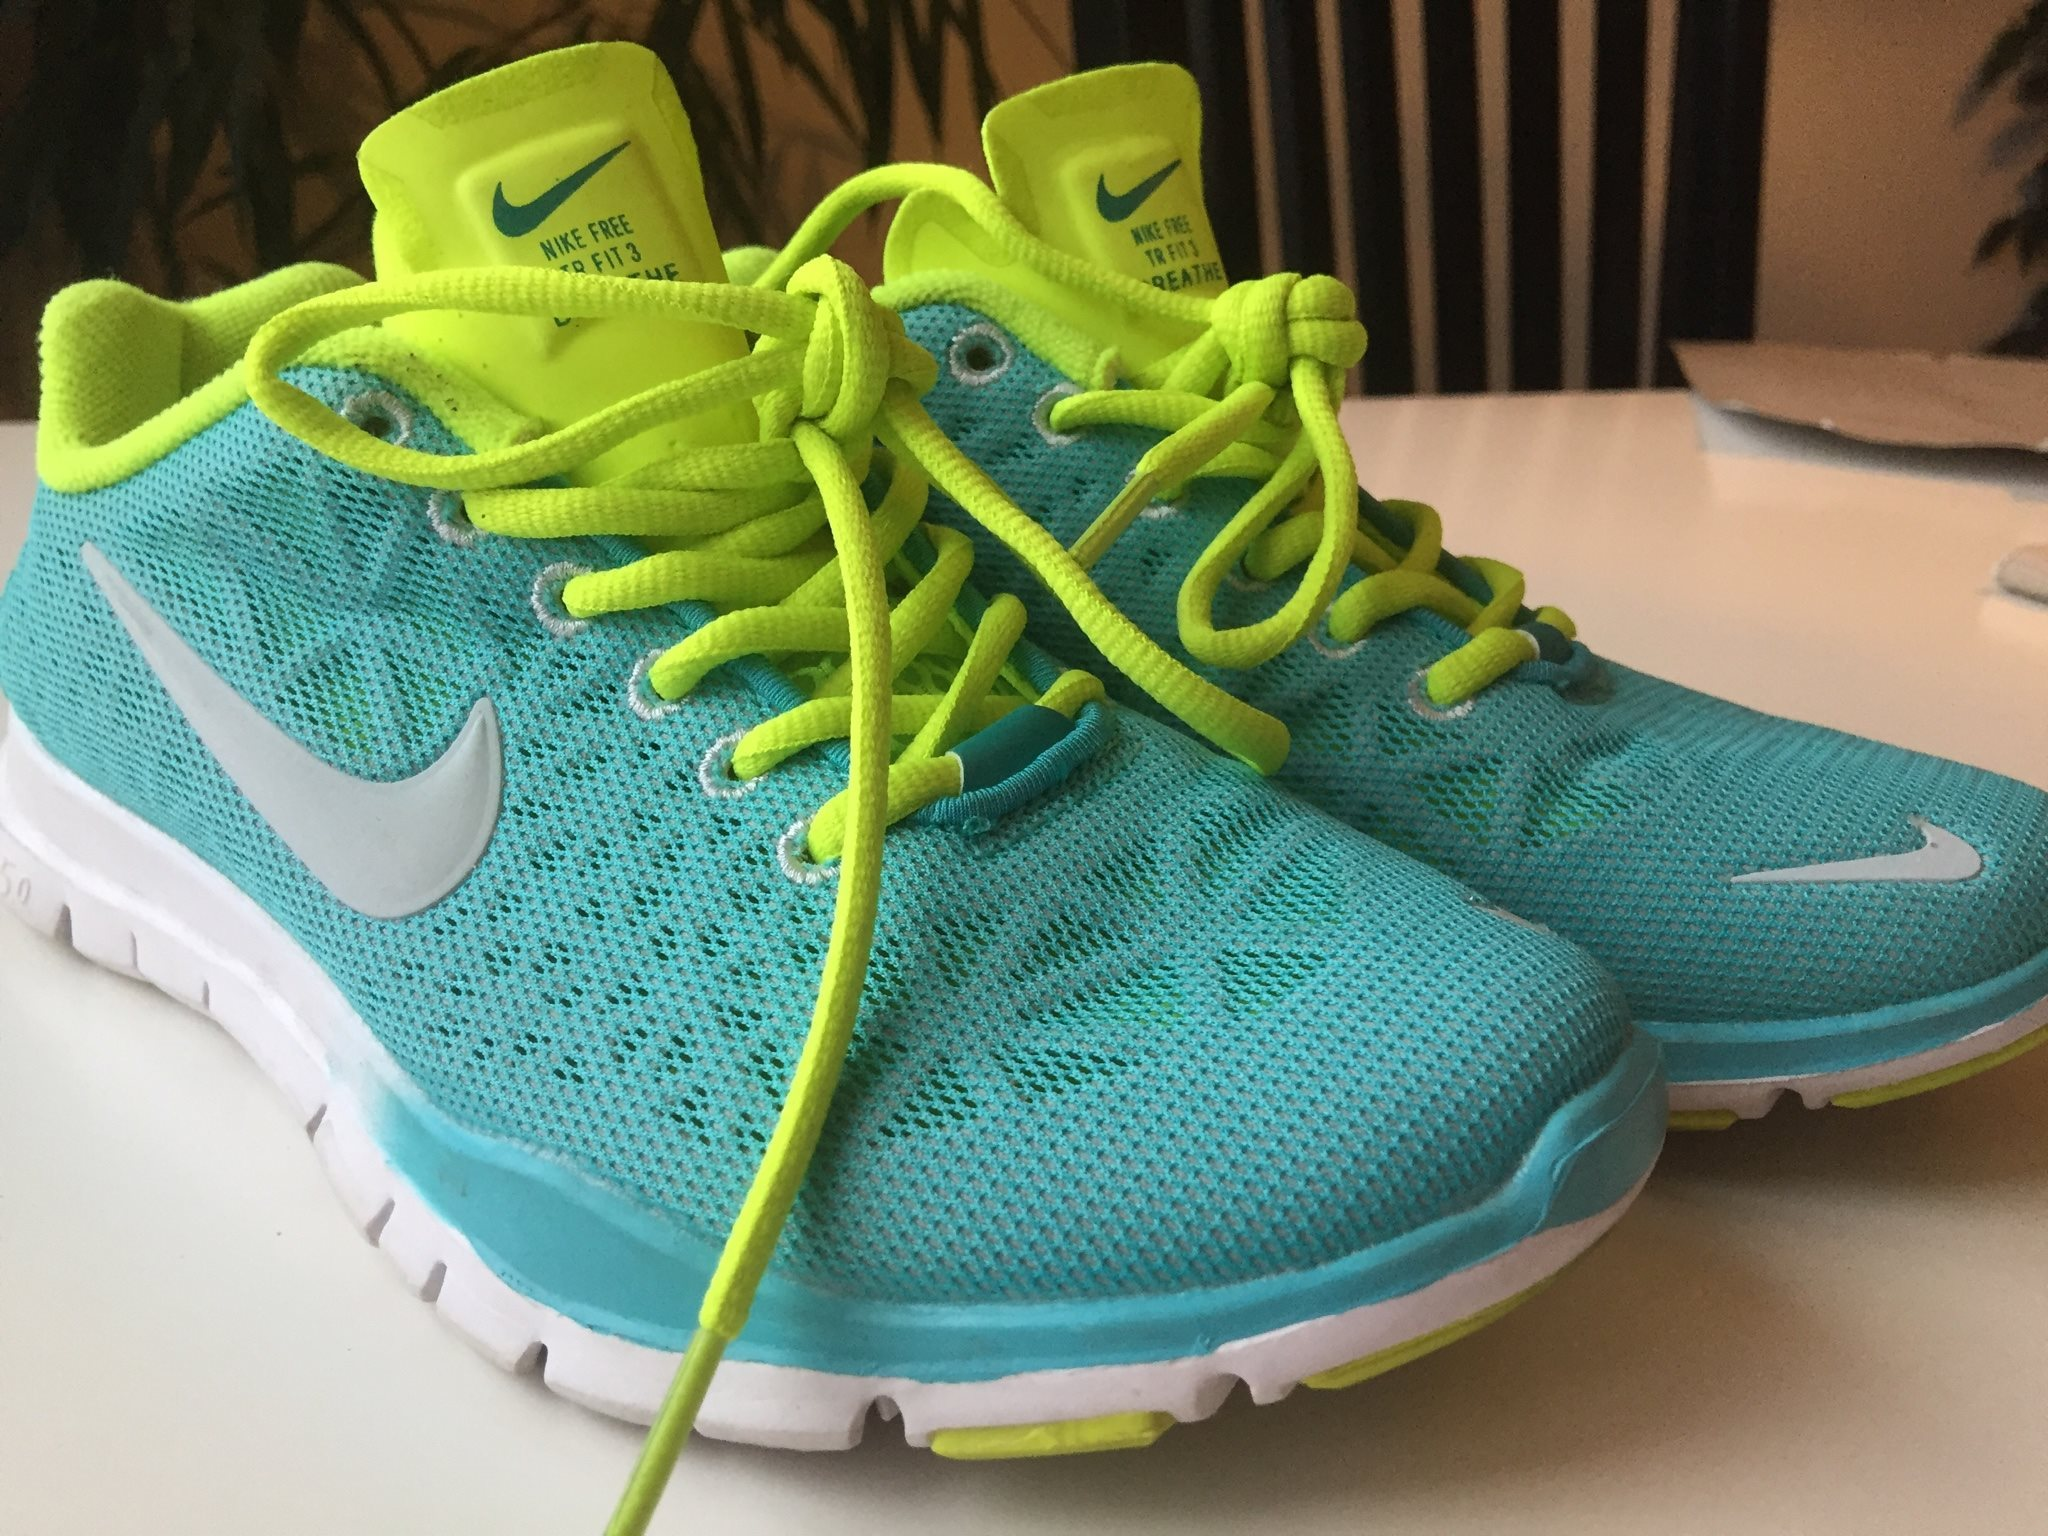 new product 1adef 10ae0 finest selection 448ac 339b2 turkosa nike skor  premium selection 5f931  a4612 Turkosa Nike Free 5.0, stl 38, fint skick,knappt